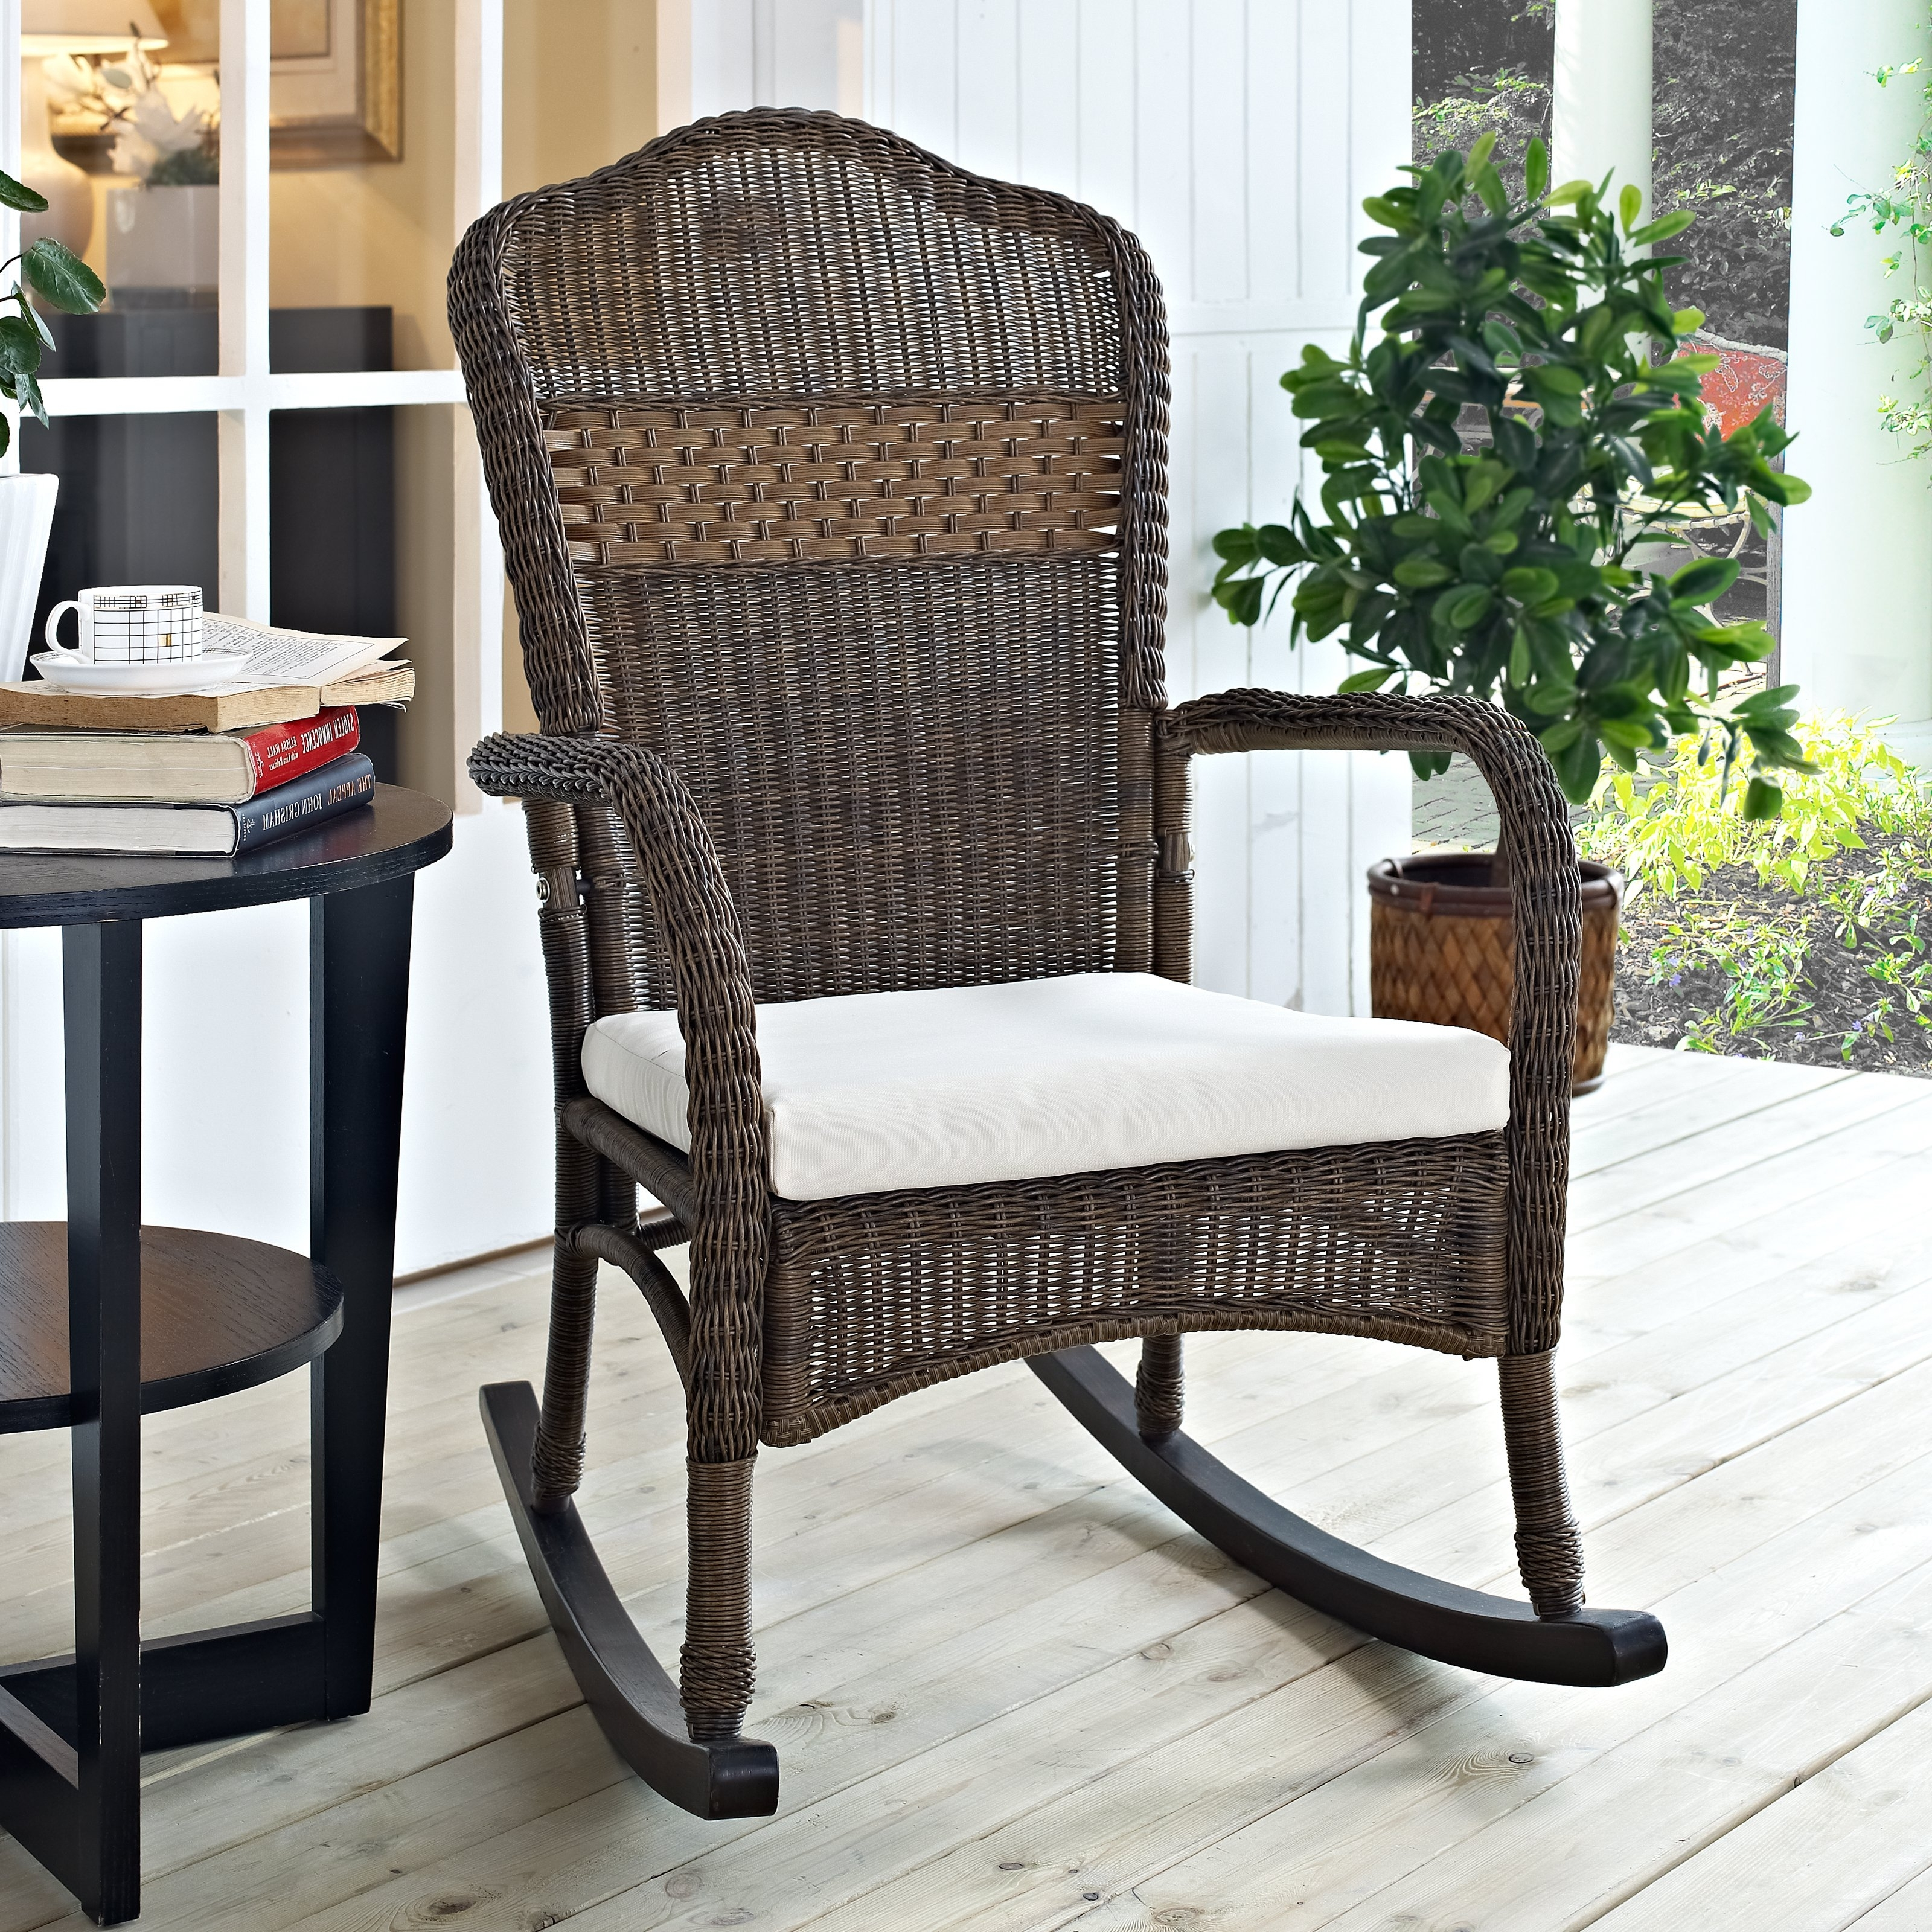 Favorite Used Patio Rocking Chairs Regarding Coral Coast Mocha Resin Wicker Rocking Chair With Beige Cushion (View 7 of 15)